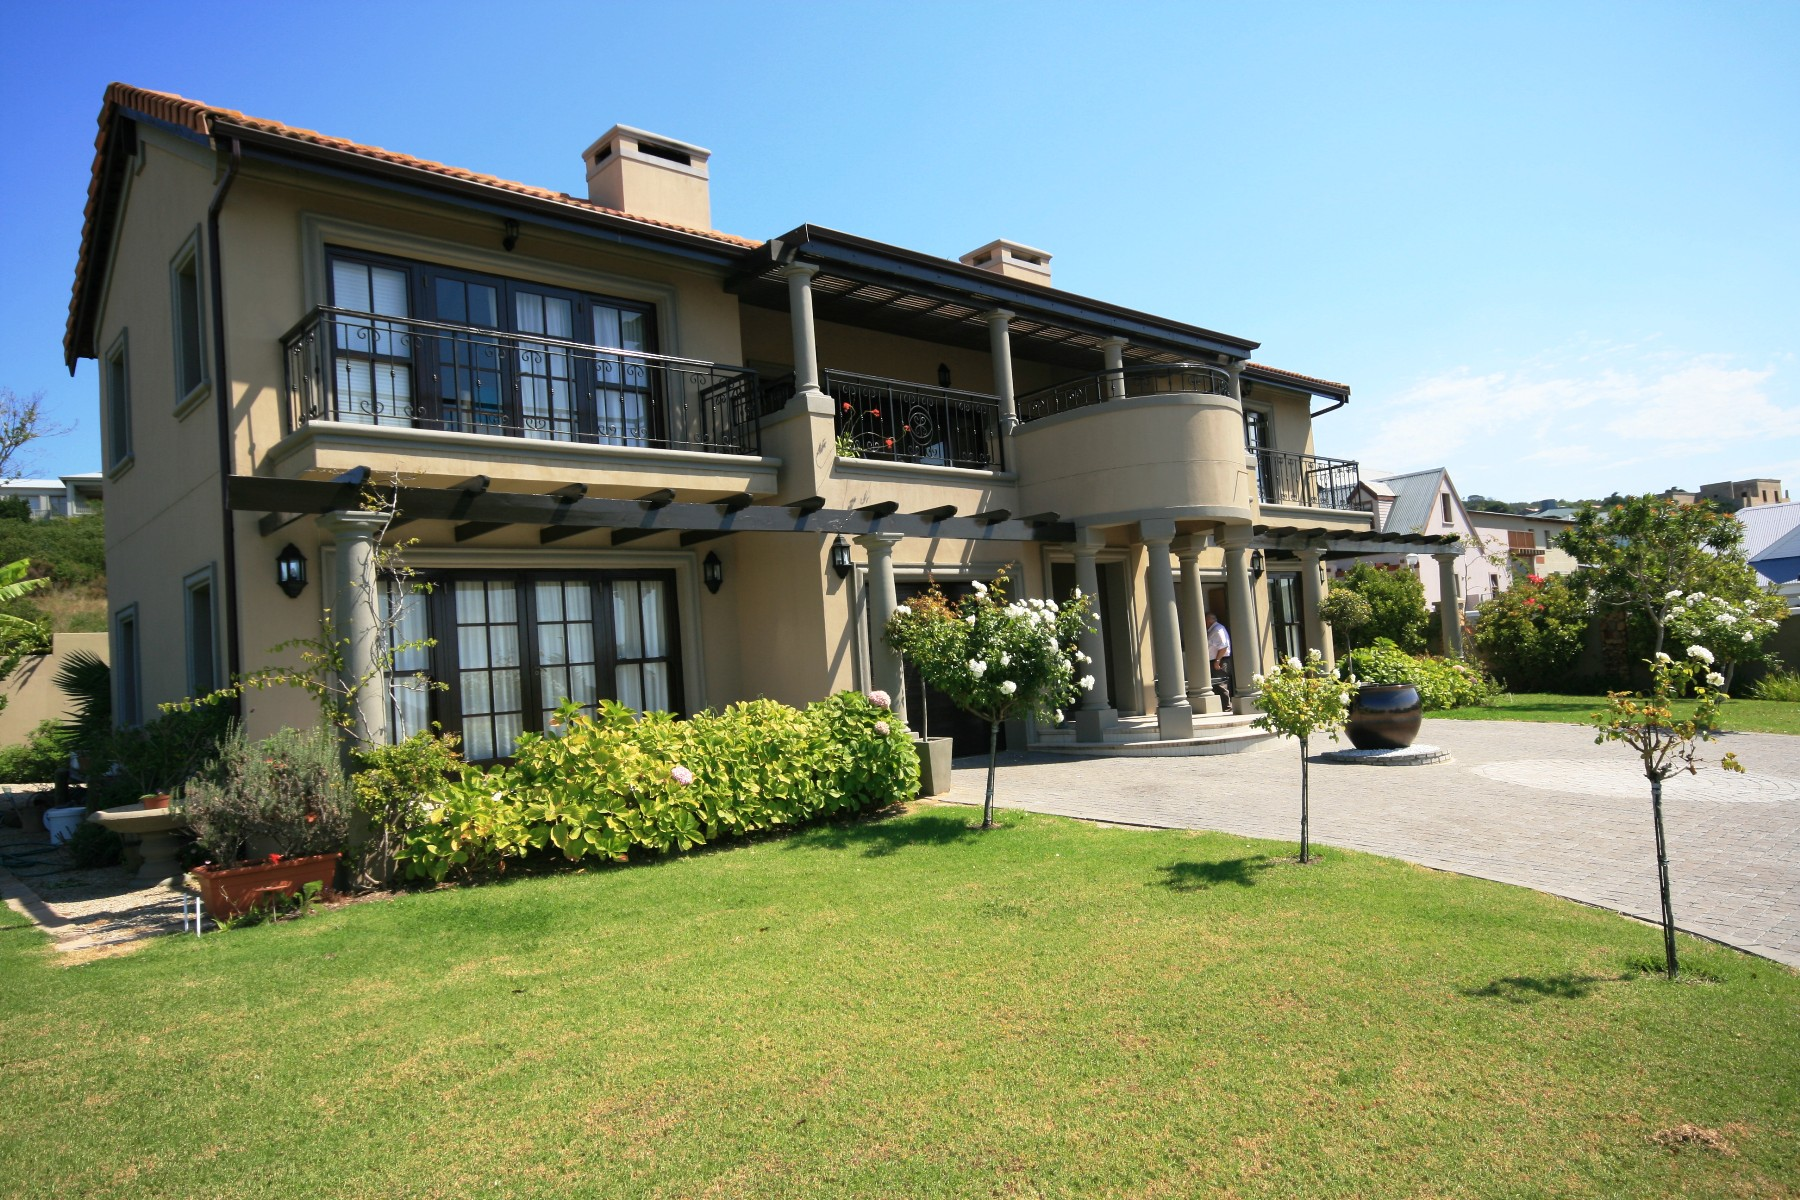 Single Family Home for Sale at A HOME OF DISTINCTION Plettenberg Bay, Western Cape 6600 South Africa